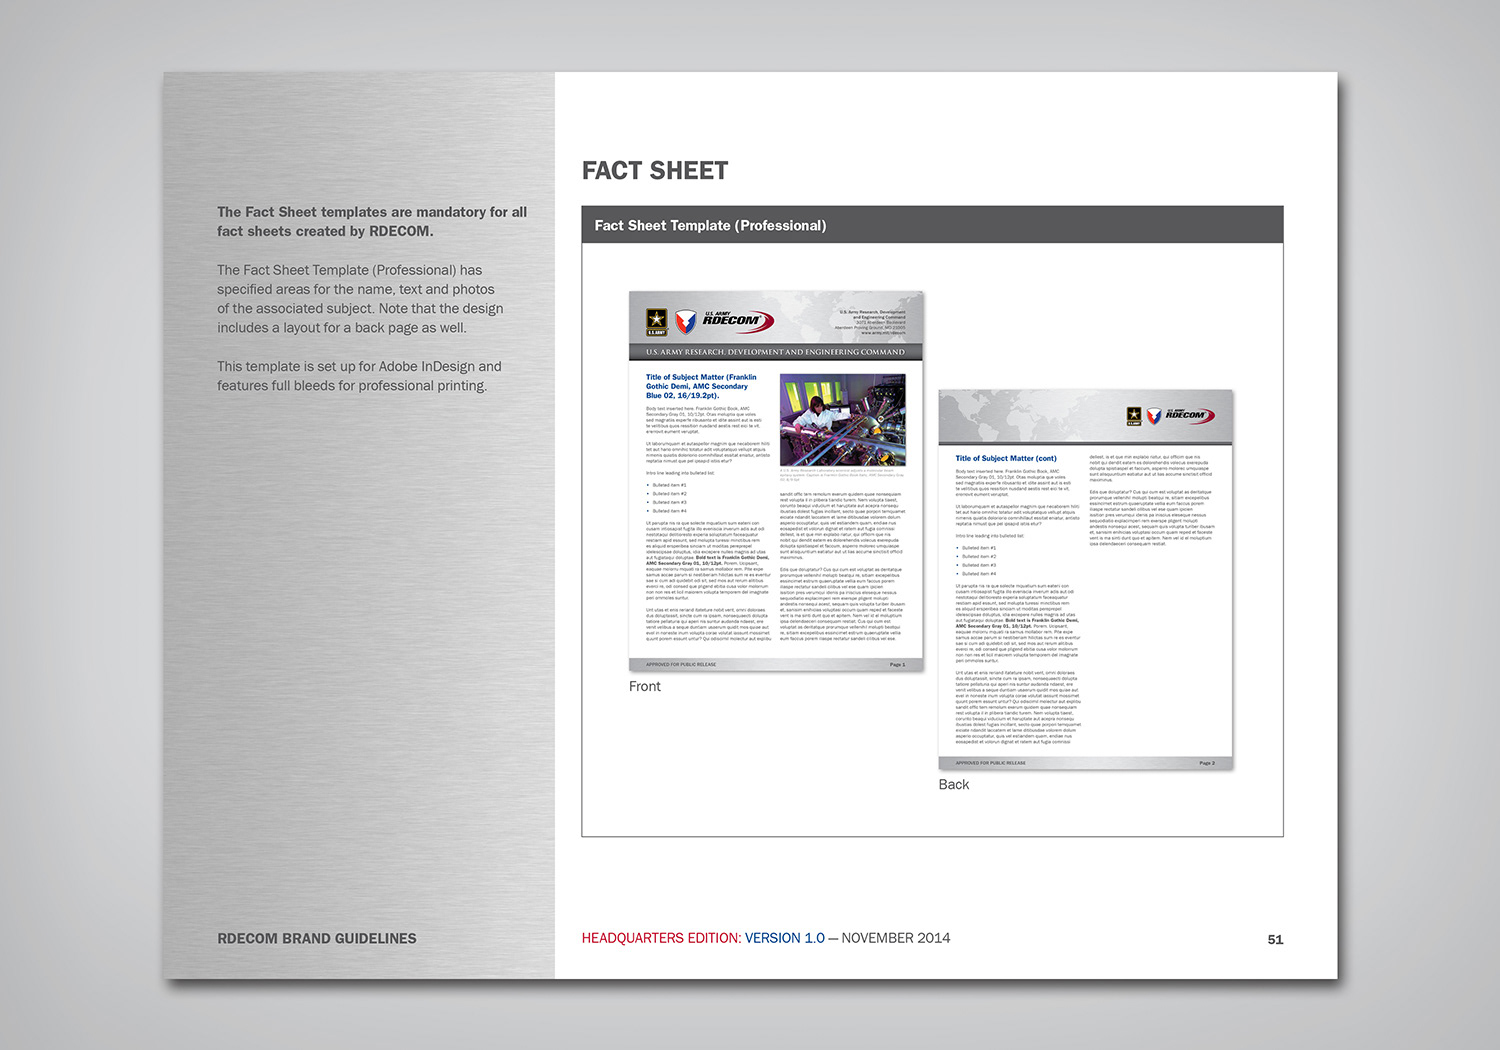 Great Product Fact Sheet Template Pictures Inspiration - Entry Level ...